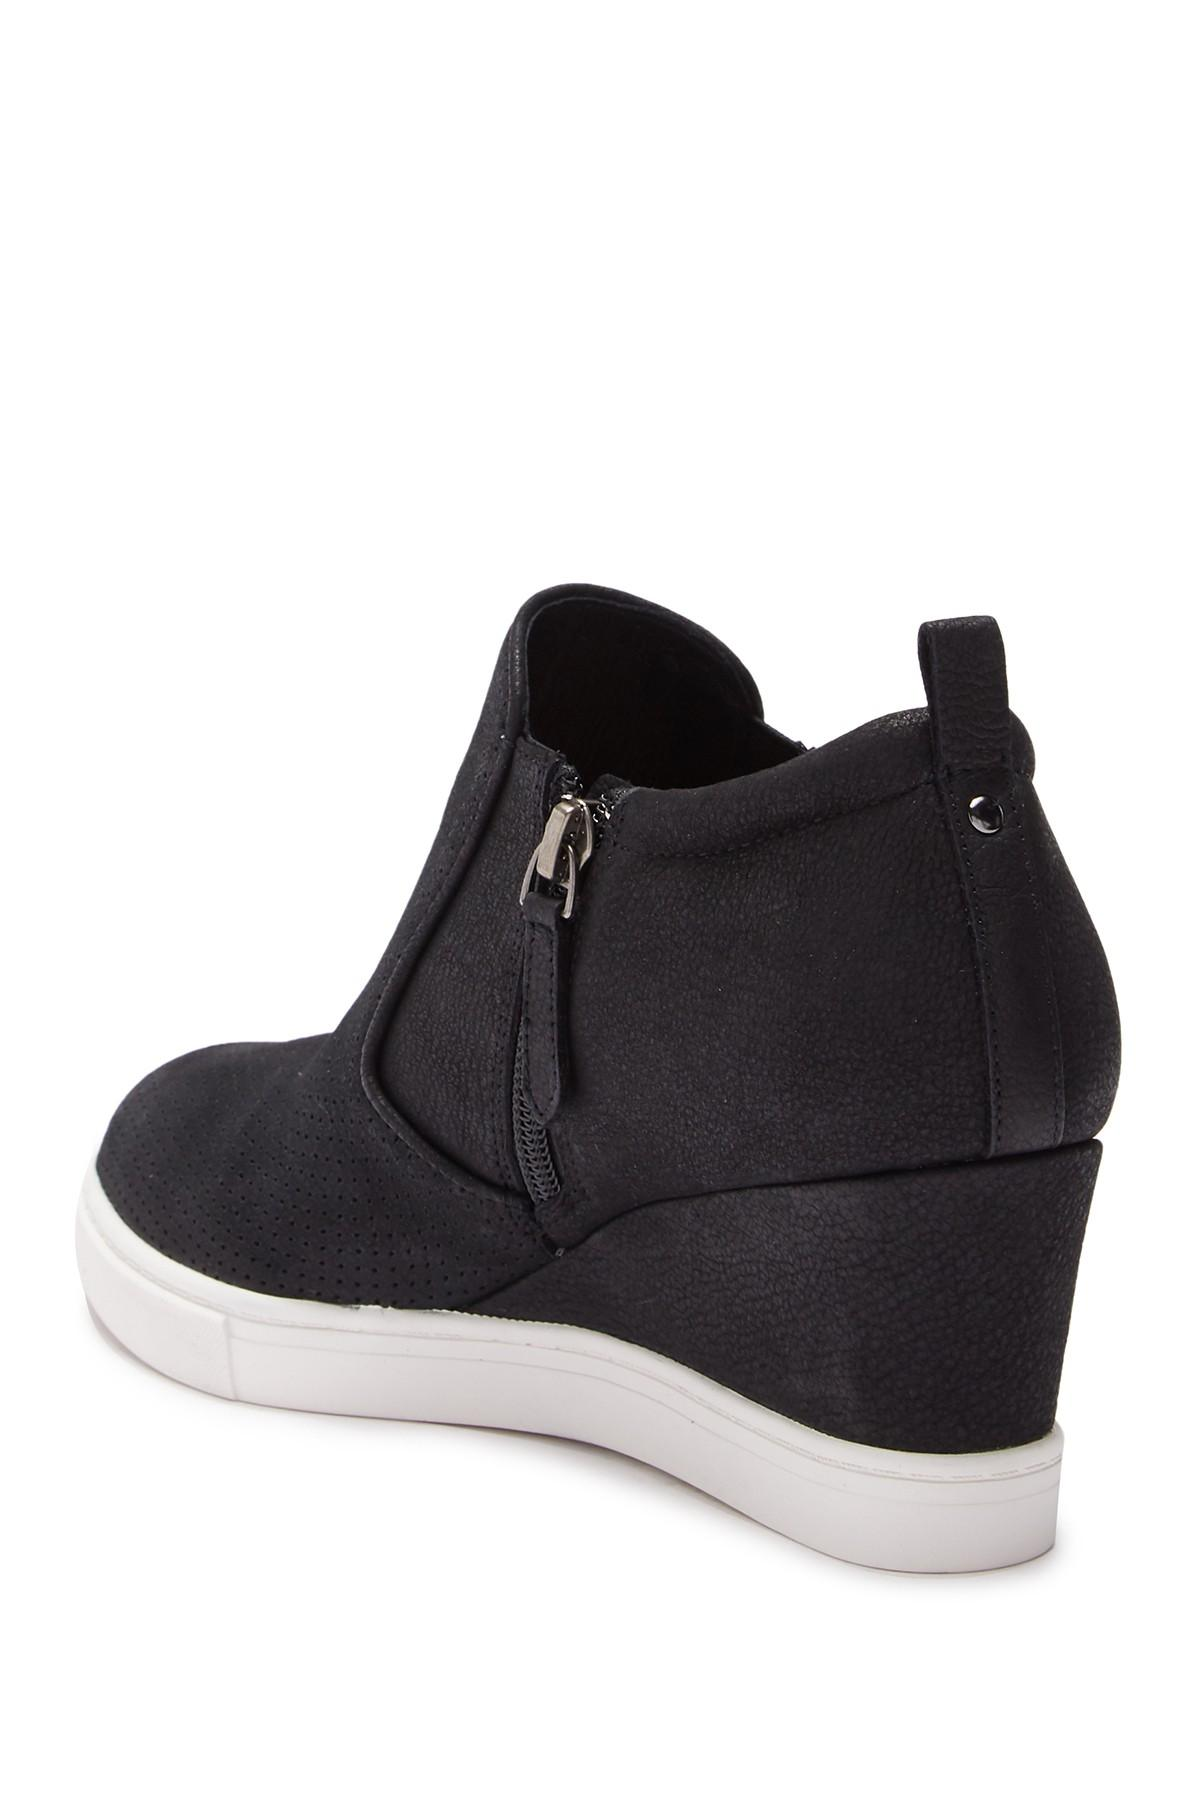 23a6125481c Lyst - Caslon (r) Aiden Wedge Sneaker (women) in Black